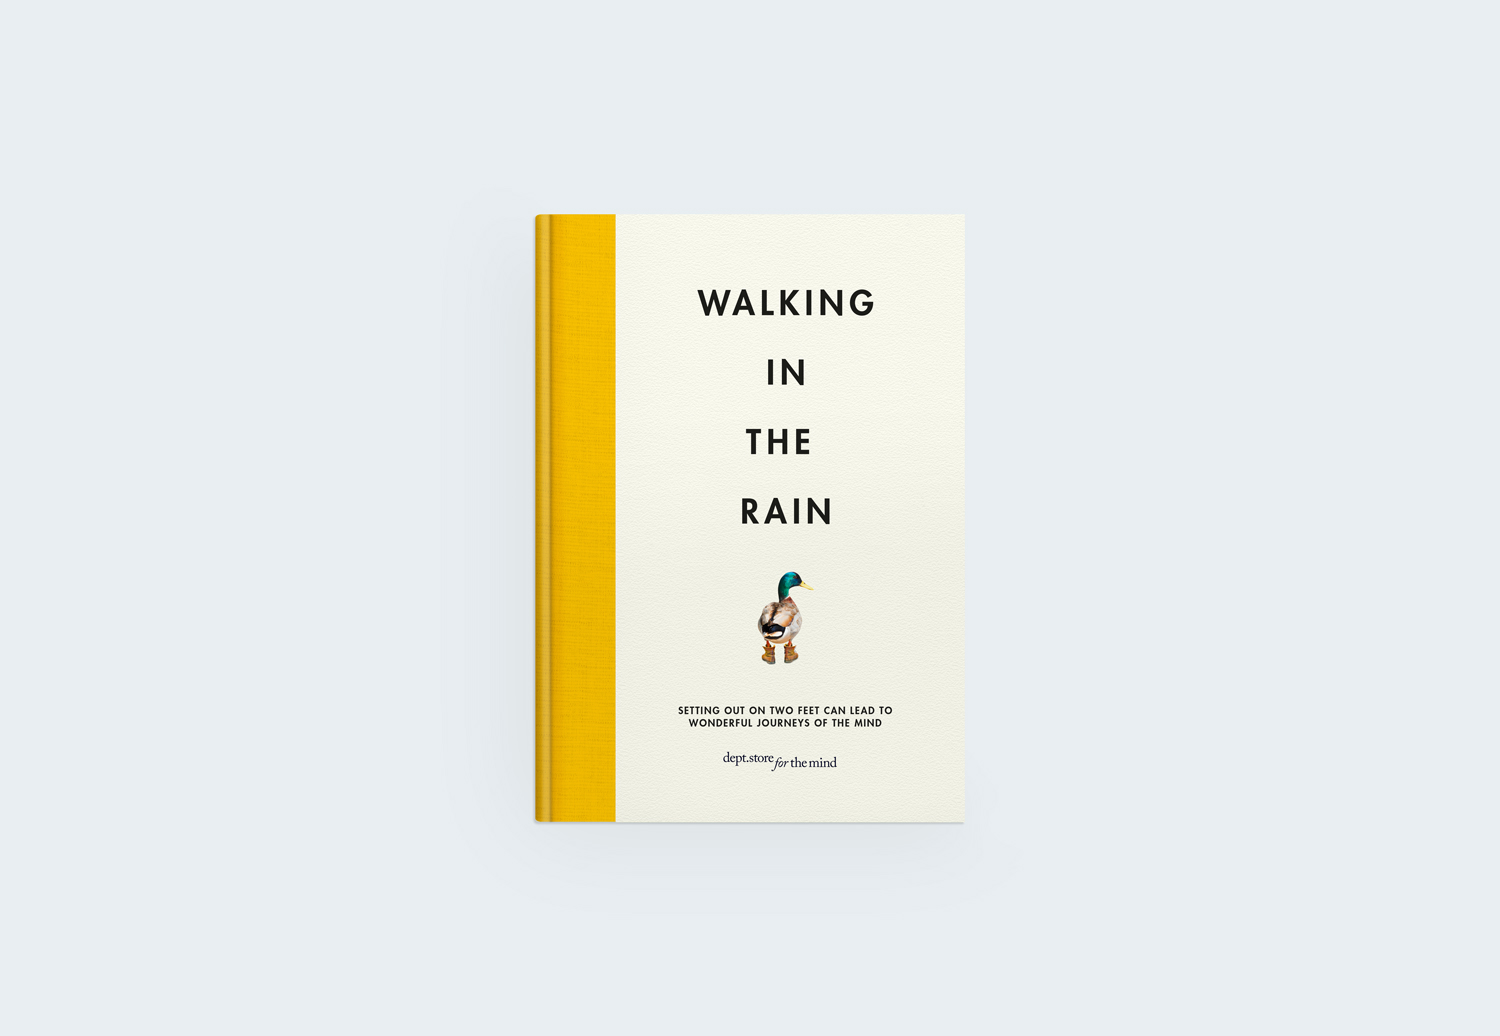 Walking_In_The_Rain_v1.jpg